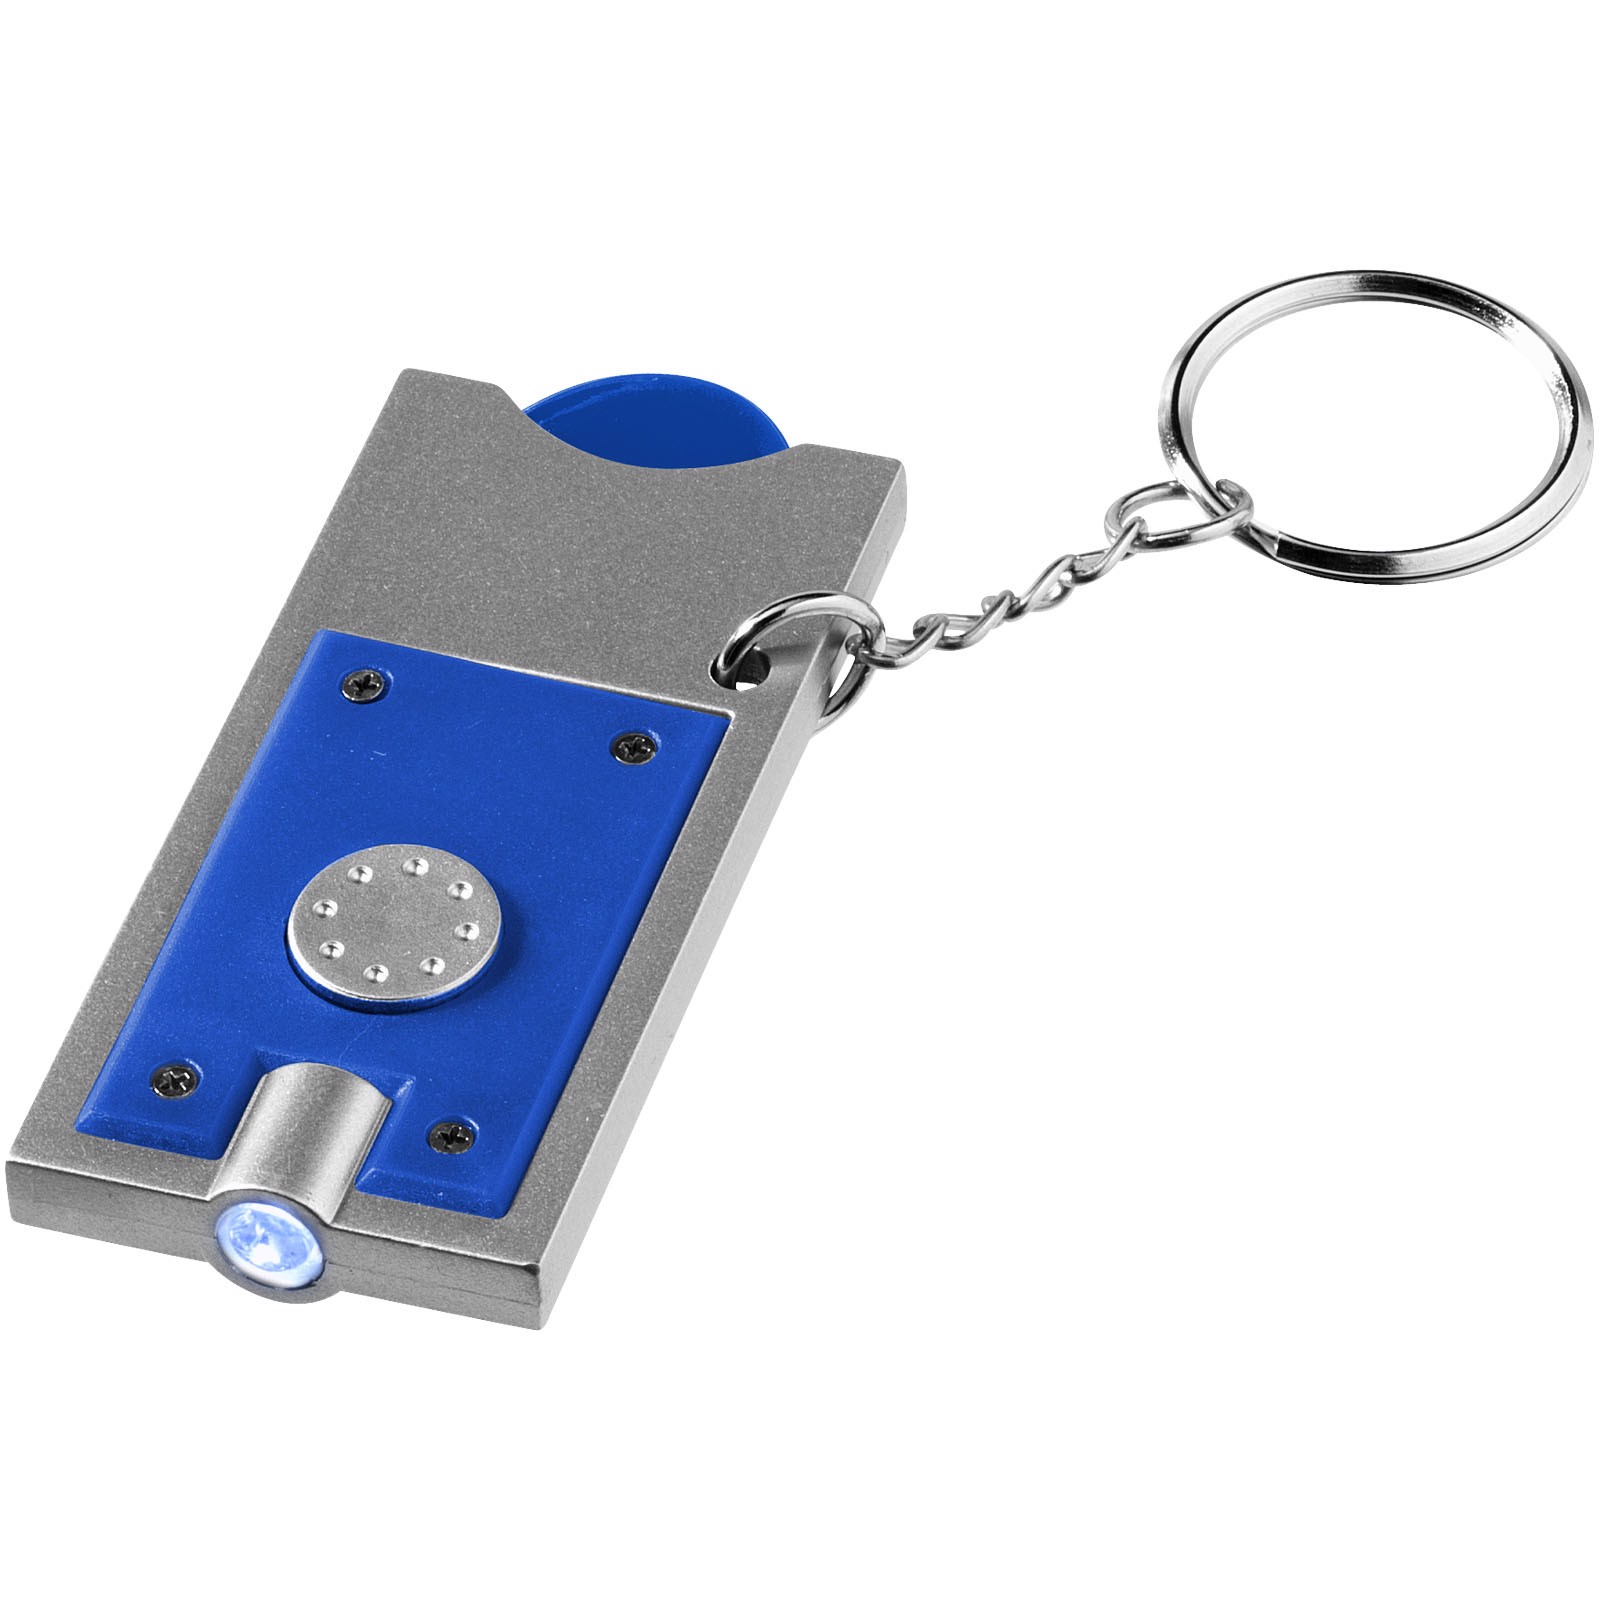 Allegro LED keychain light with coin holder - Royal blue / Silver